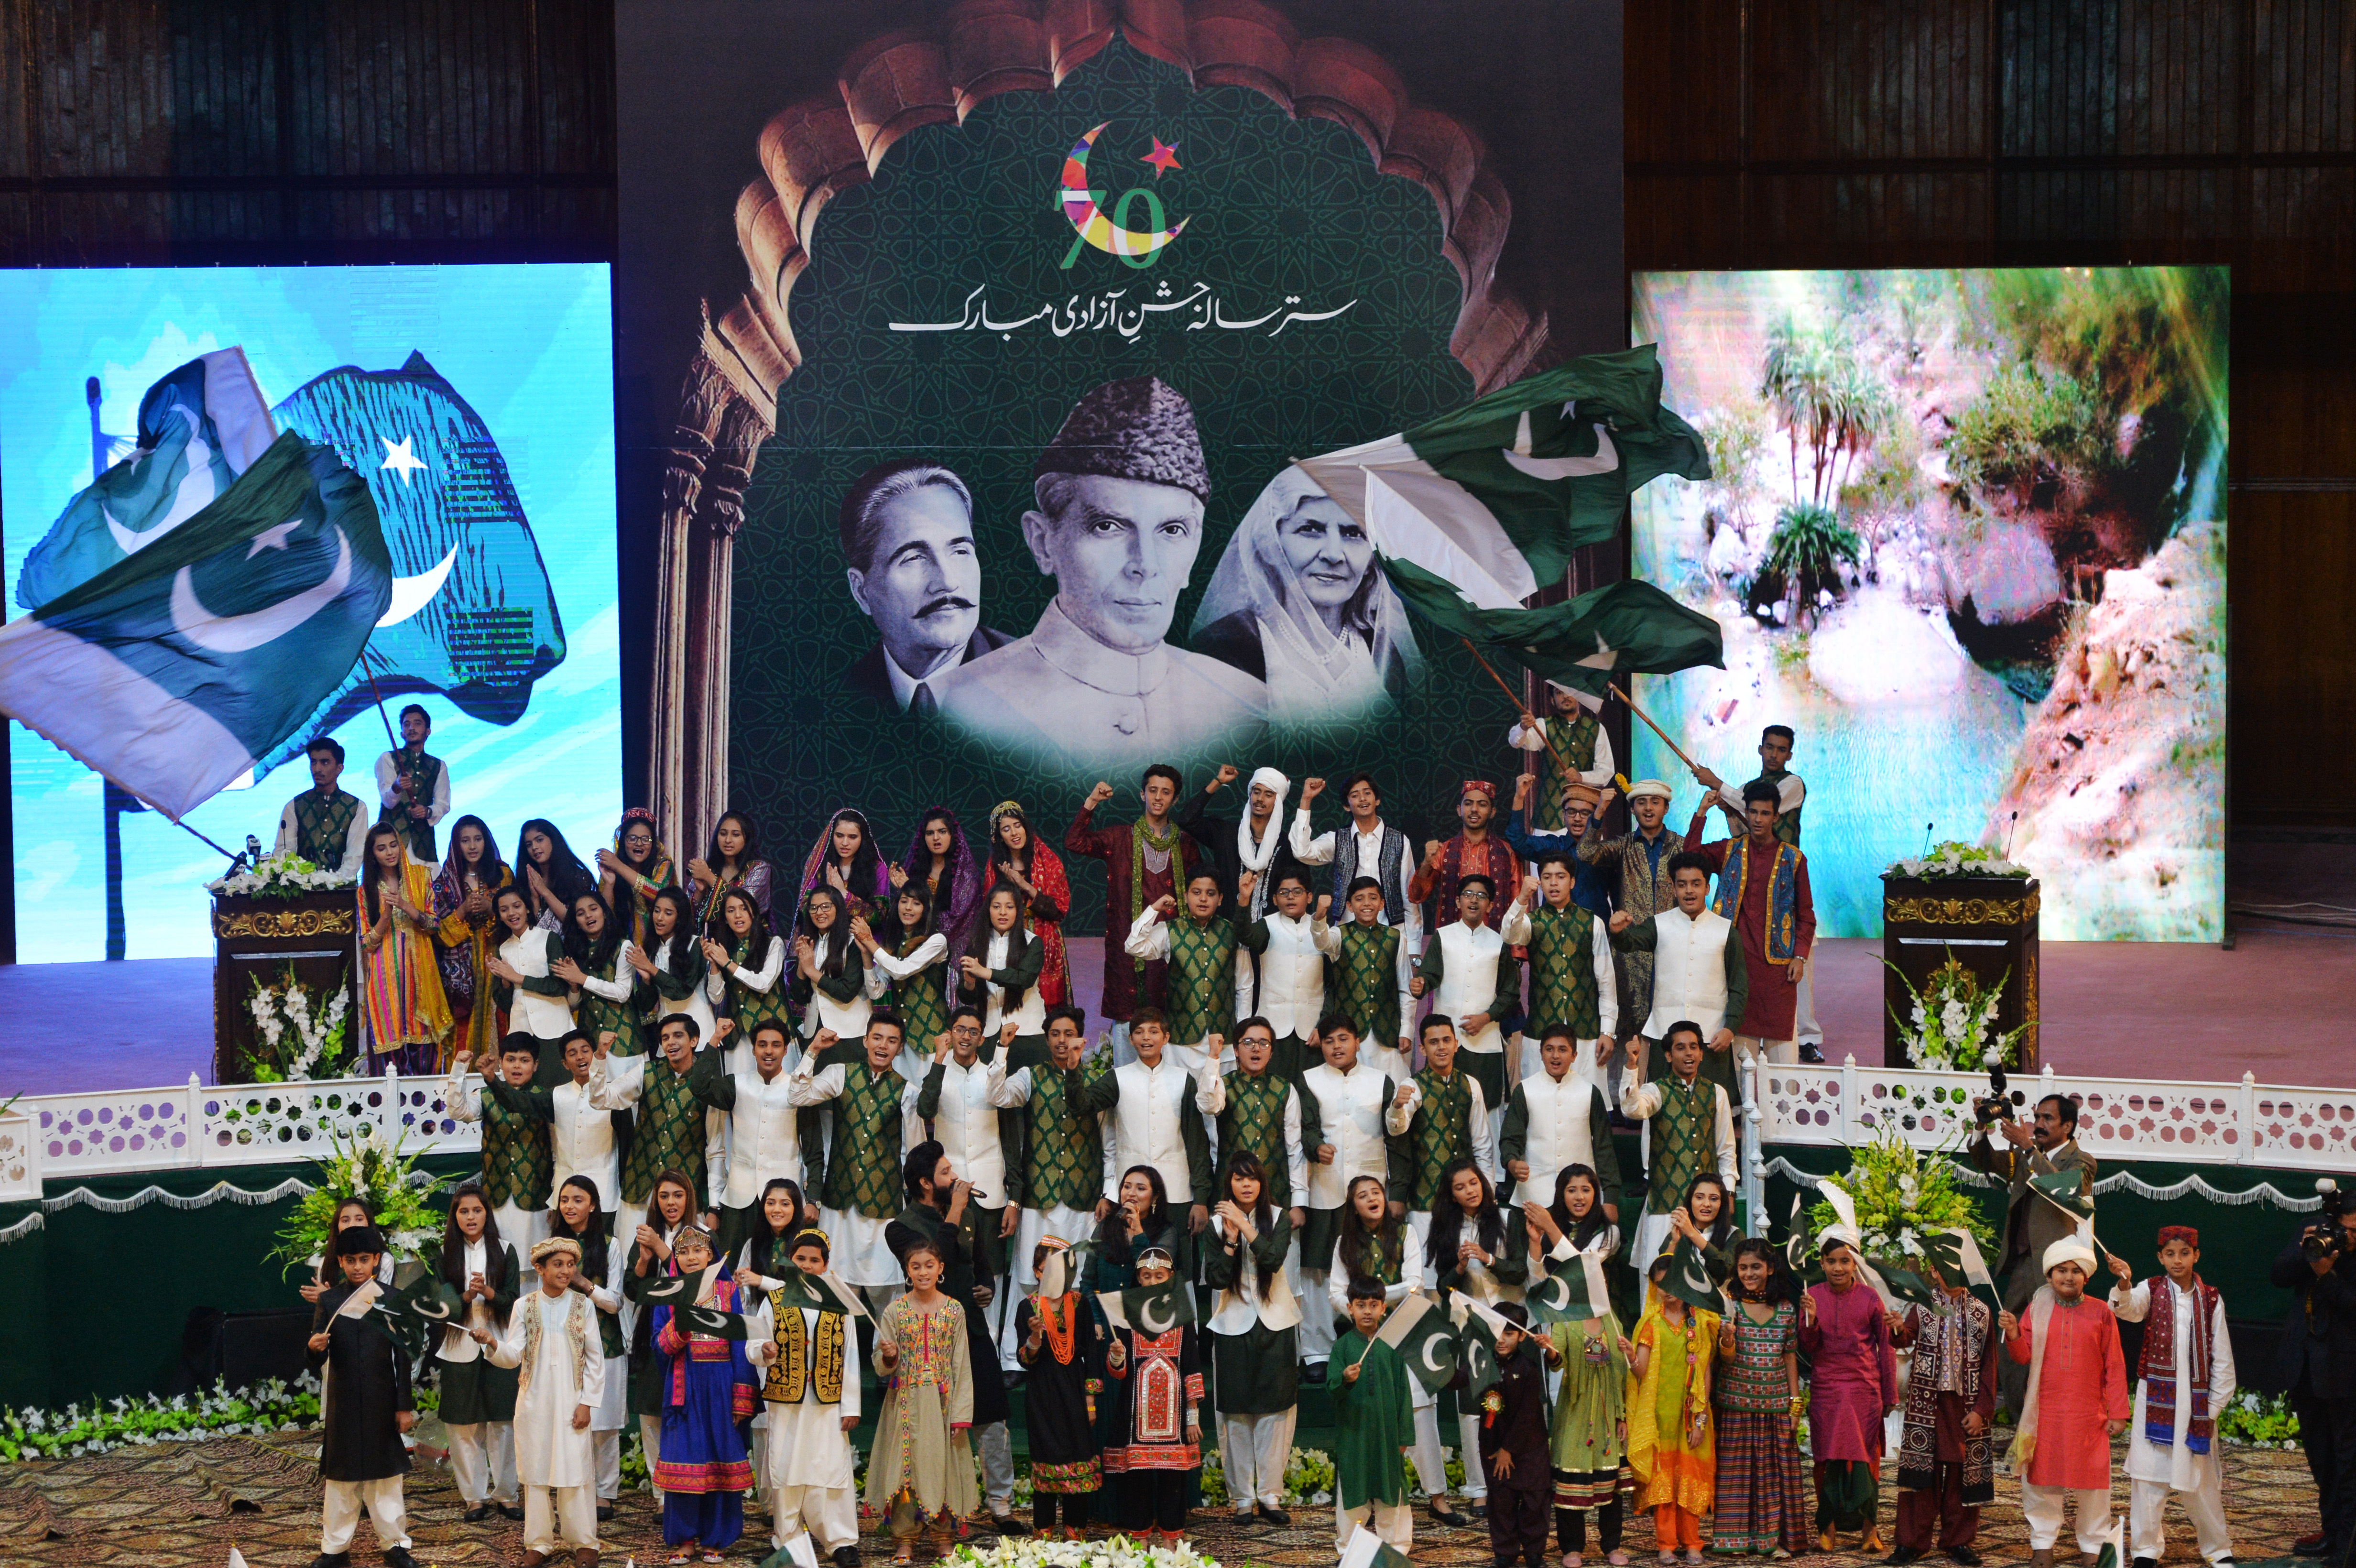 Pakistan marks 70th Independence Day with pledge to wipe out terrorism